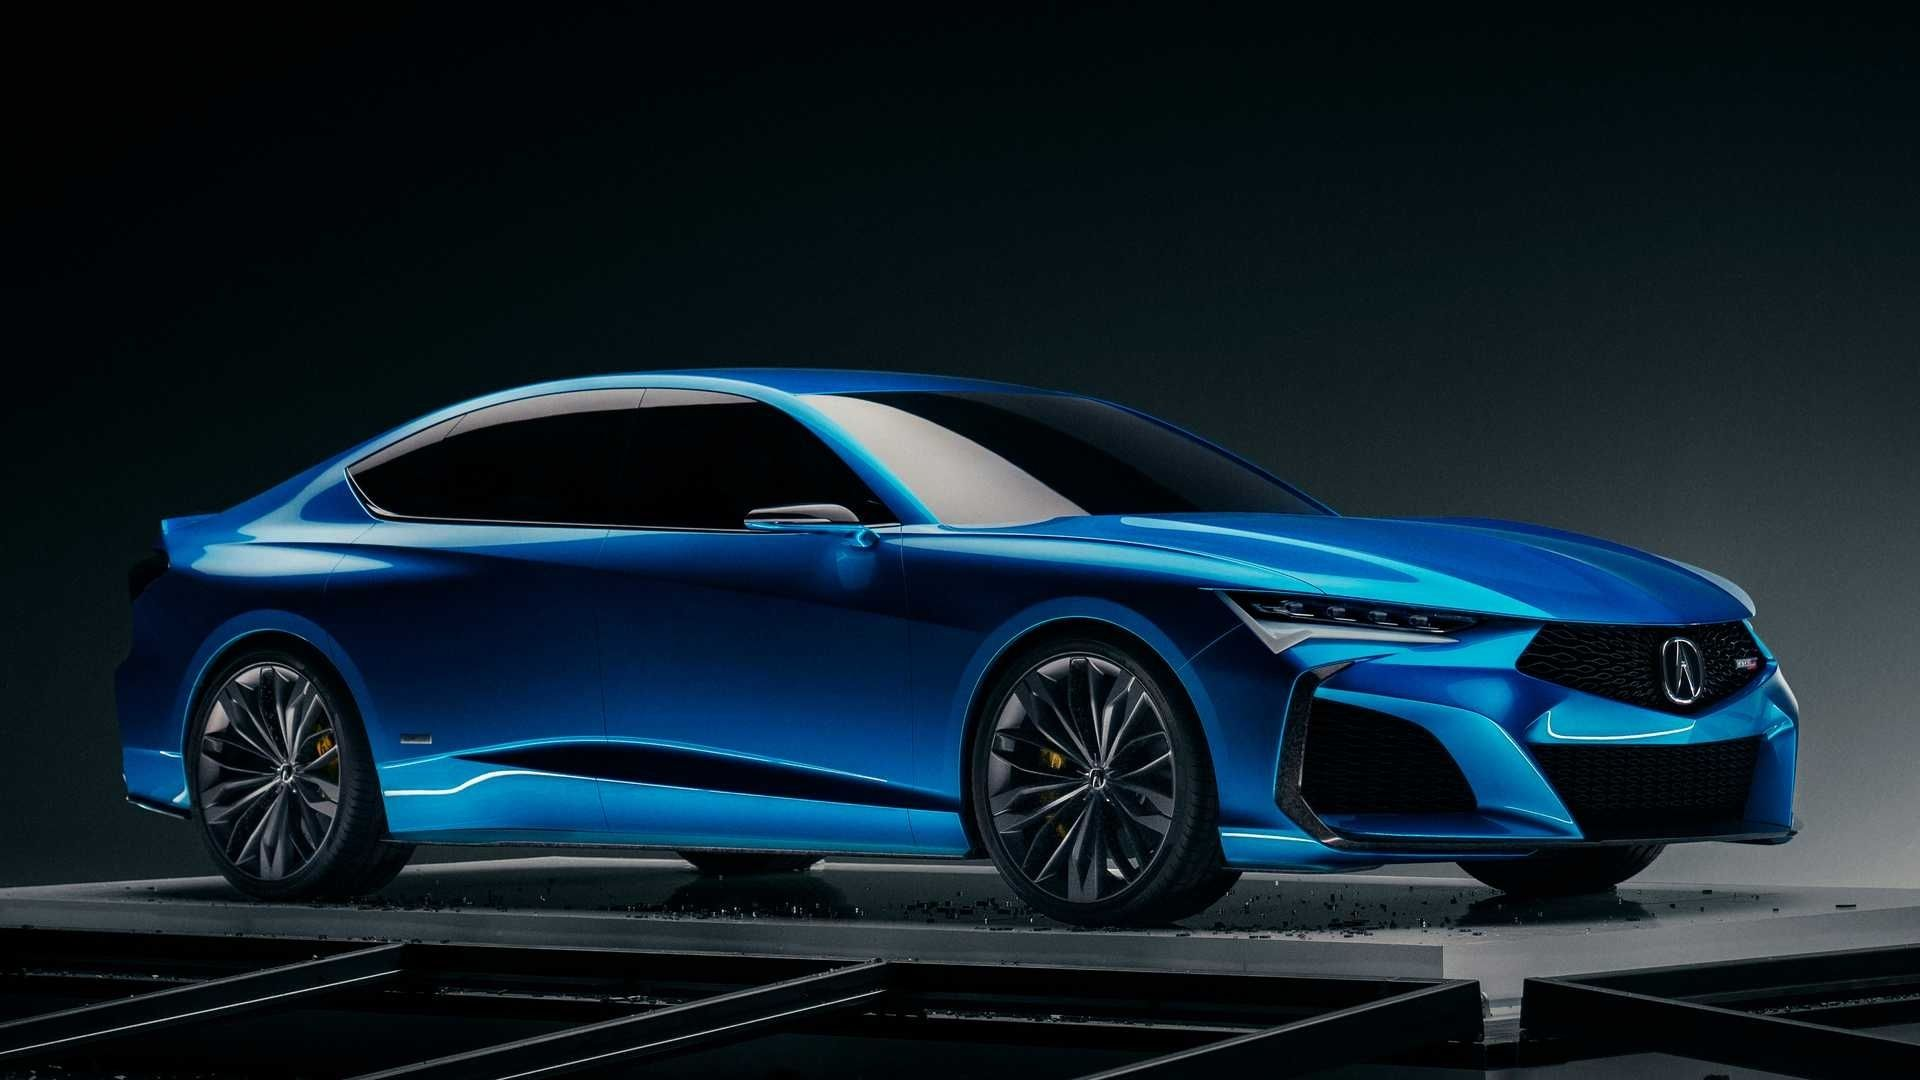 2021 Acura Pebble Seashore Mannequin Car and driver in